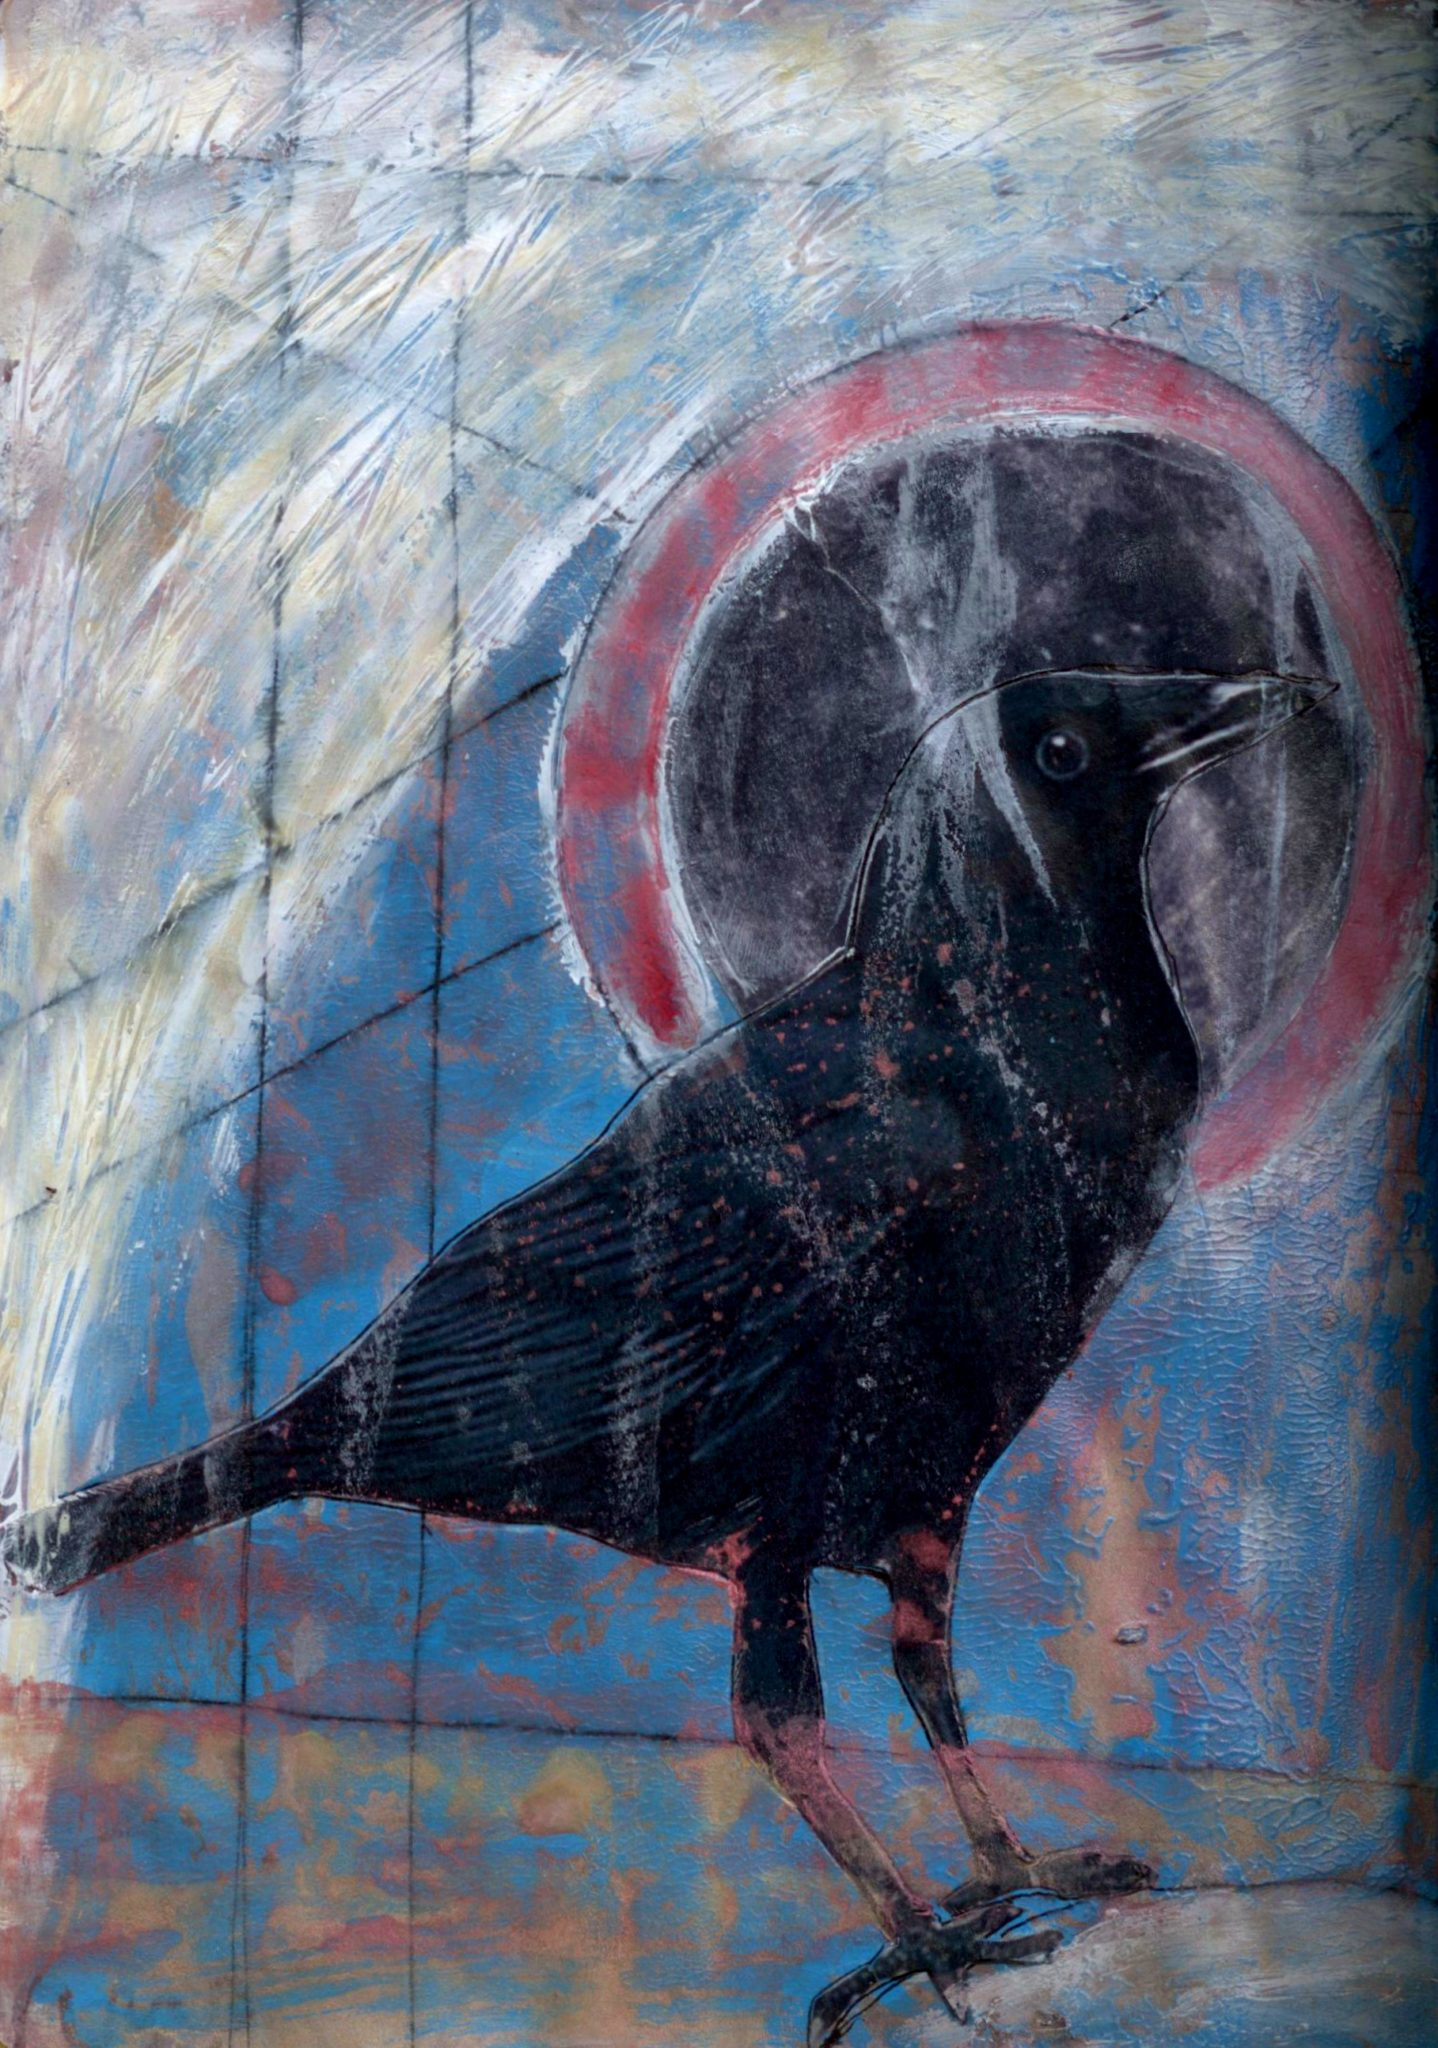 Crow's Night, mixed media collage by Courtney Putnam